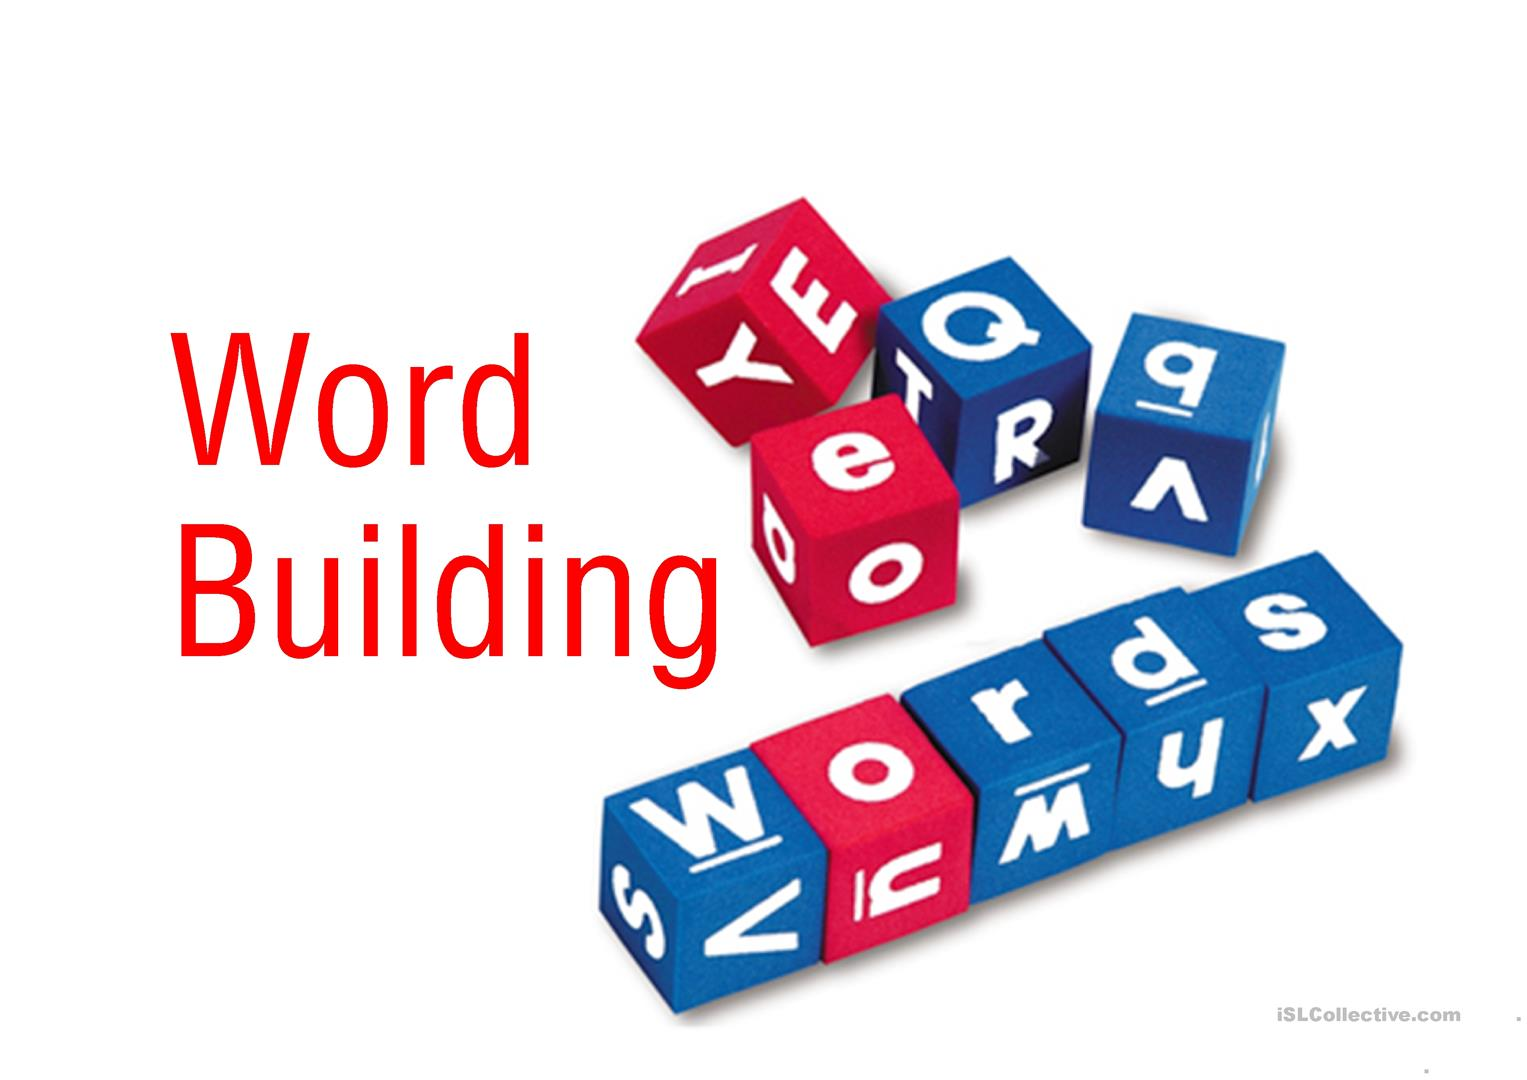 Create and use content Building Blocks in Word documents